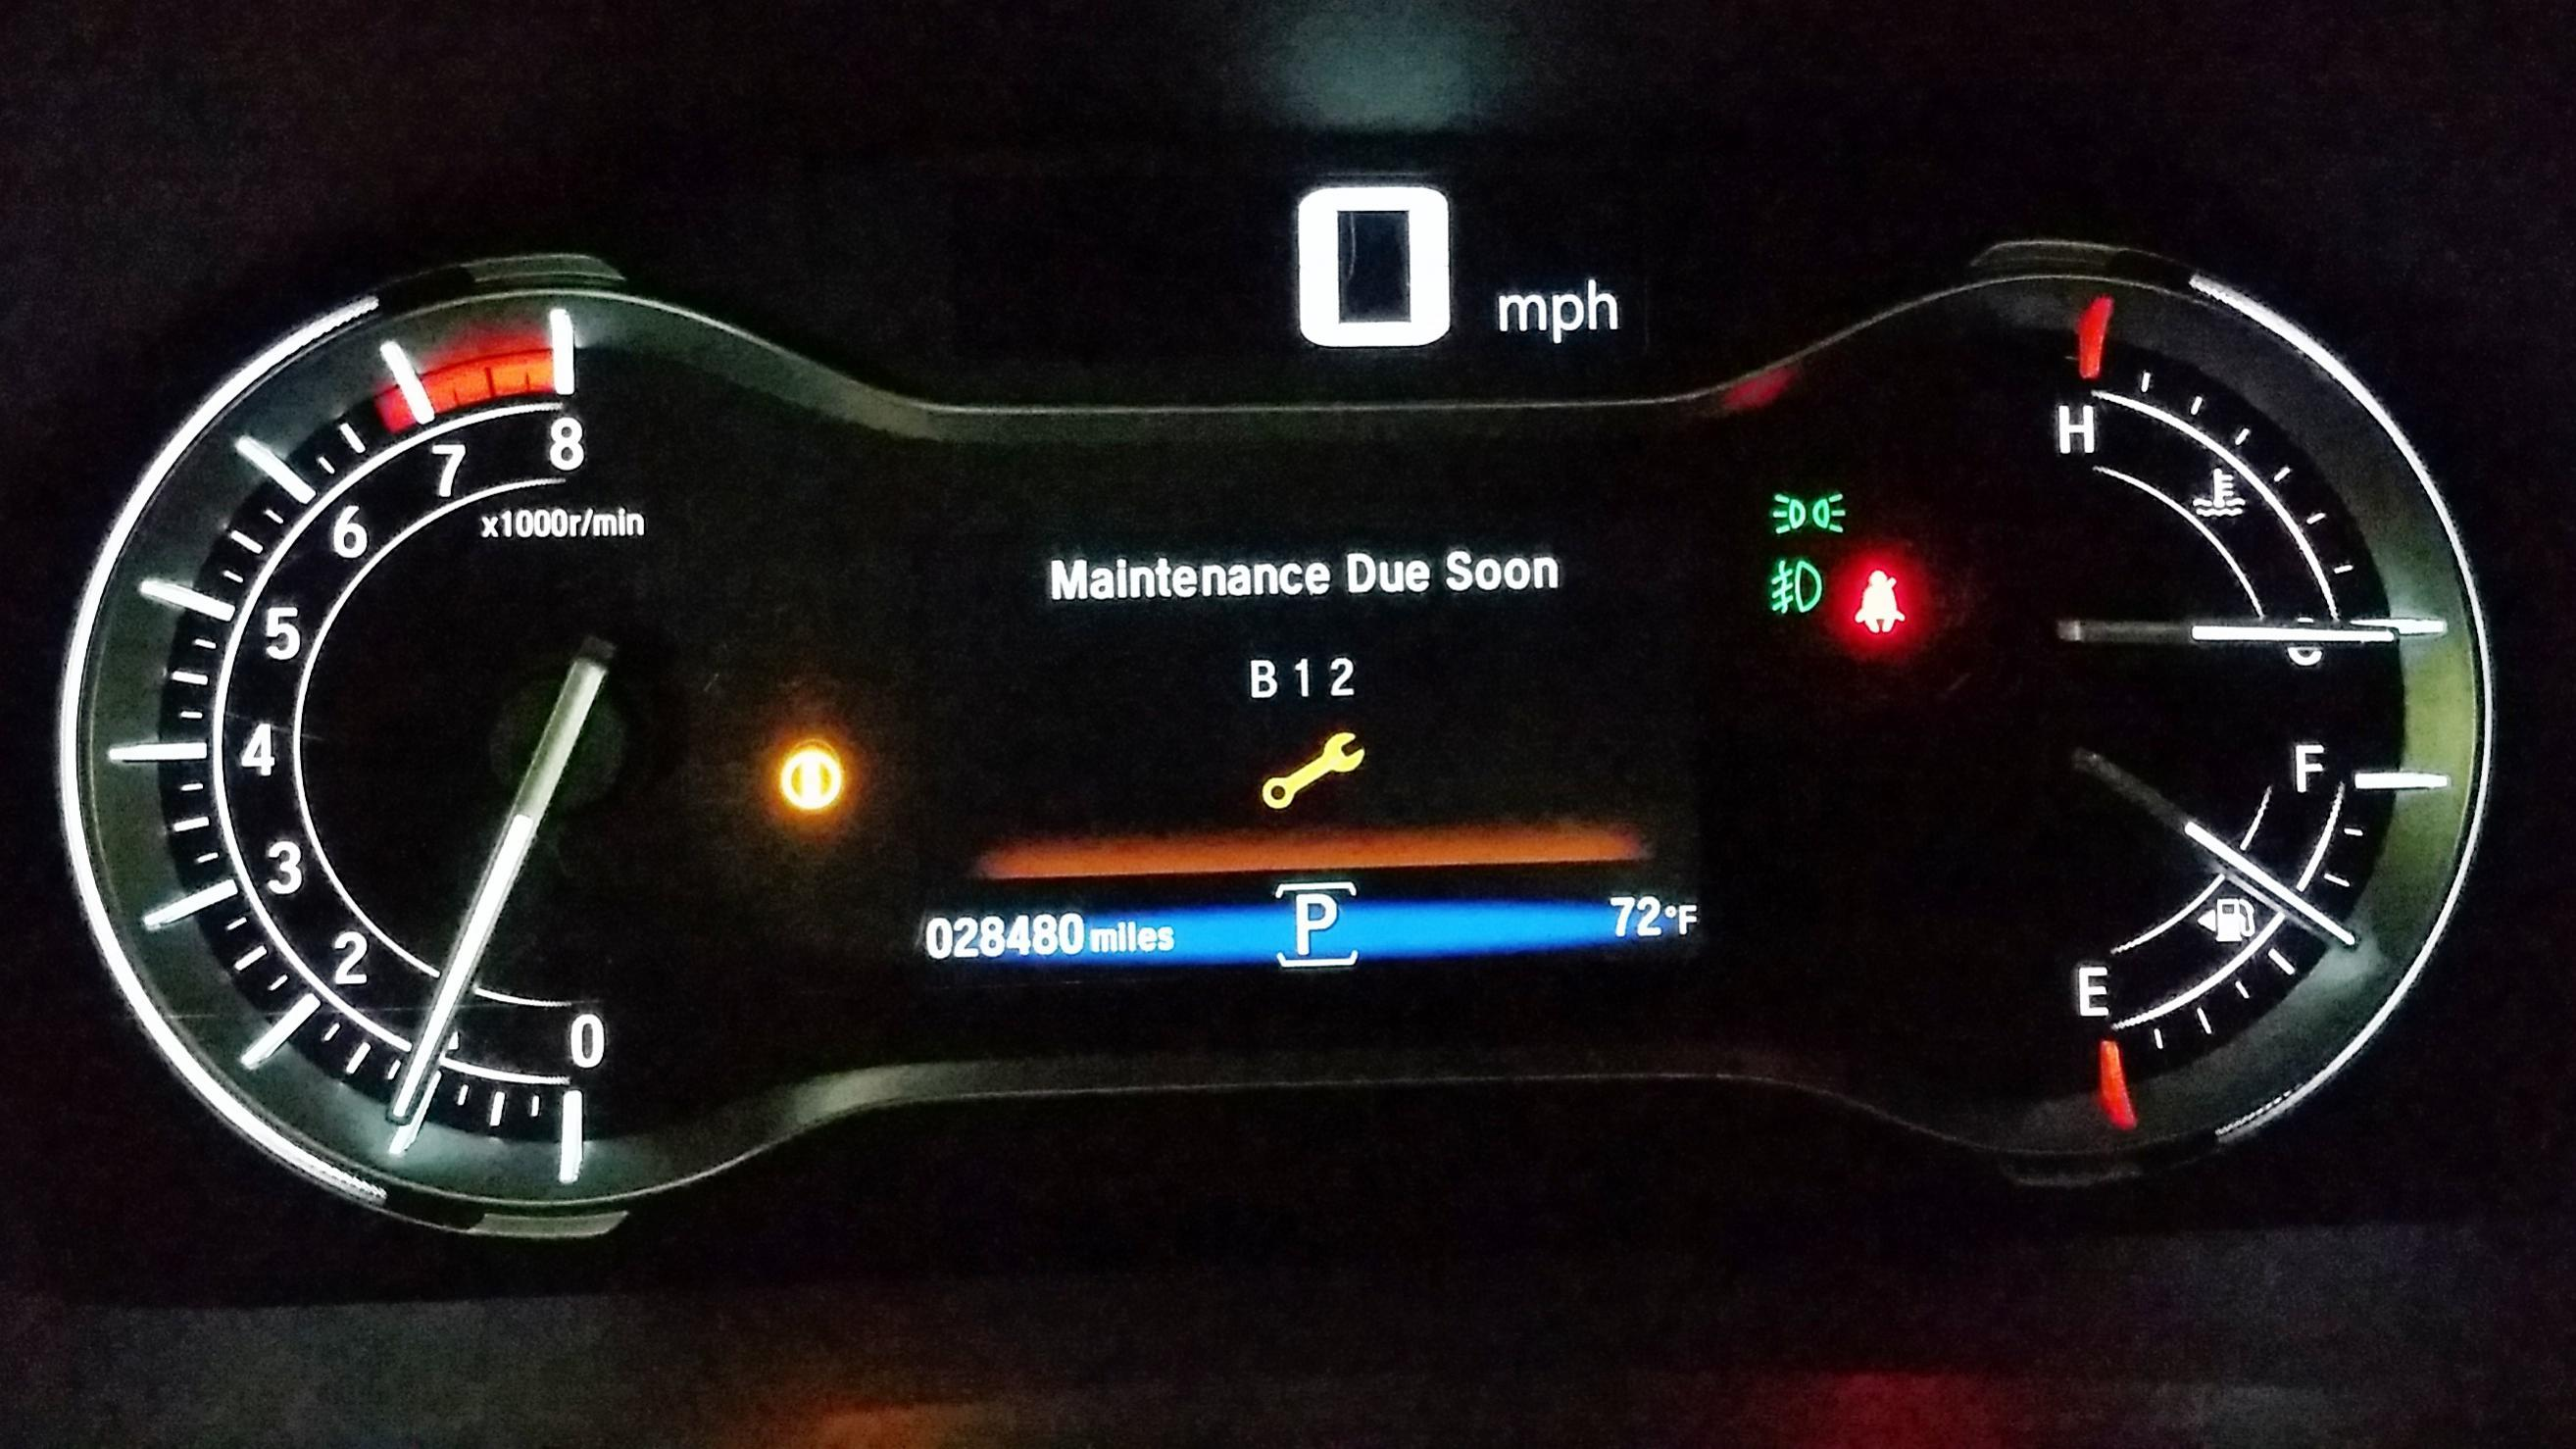 First 30k mile service or maintenance due soon dash light for Honda maintenance a1